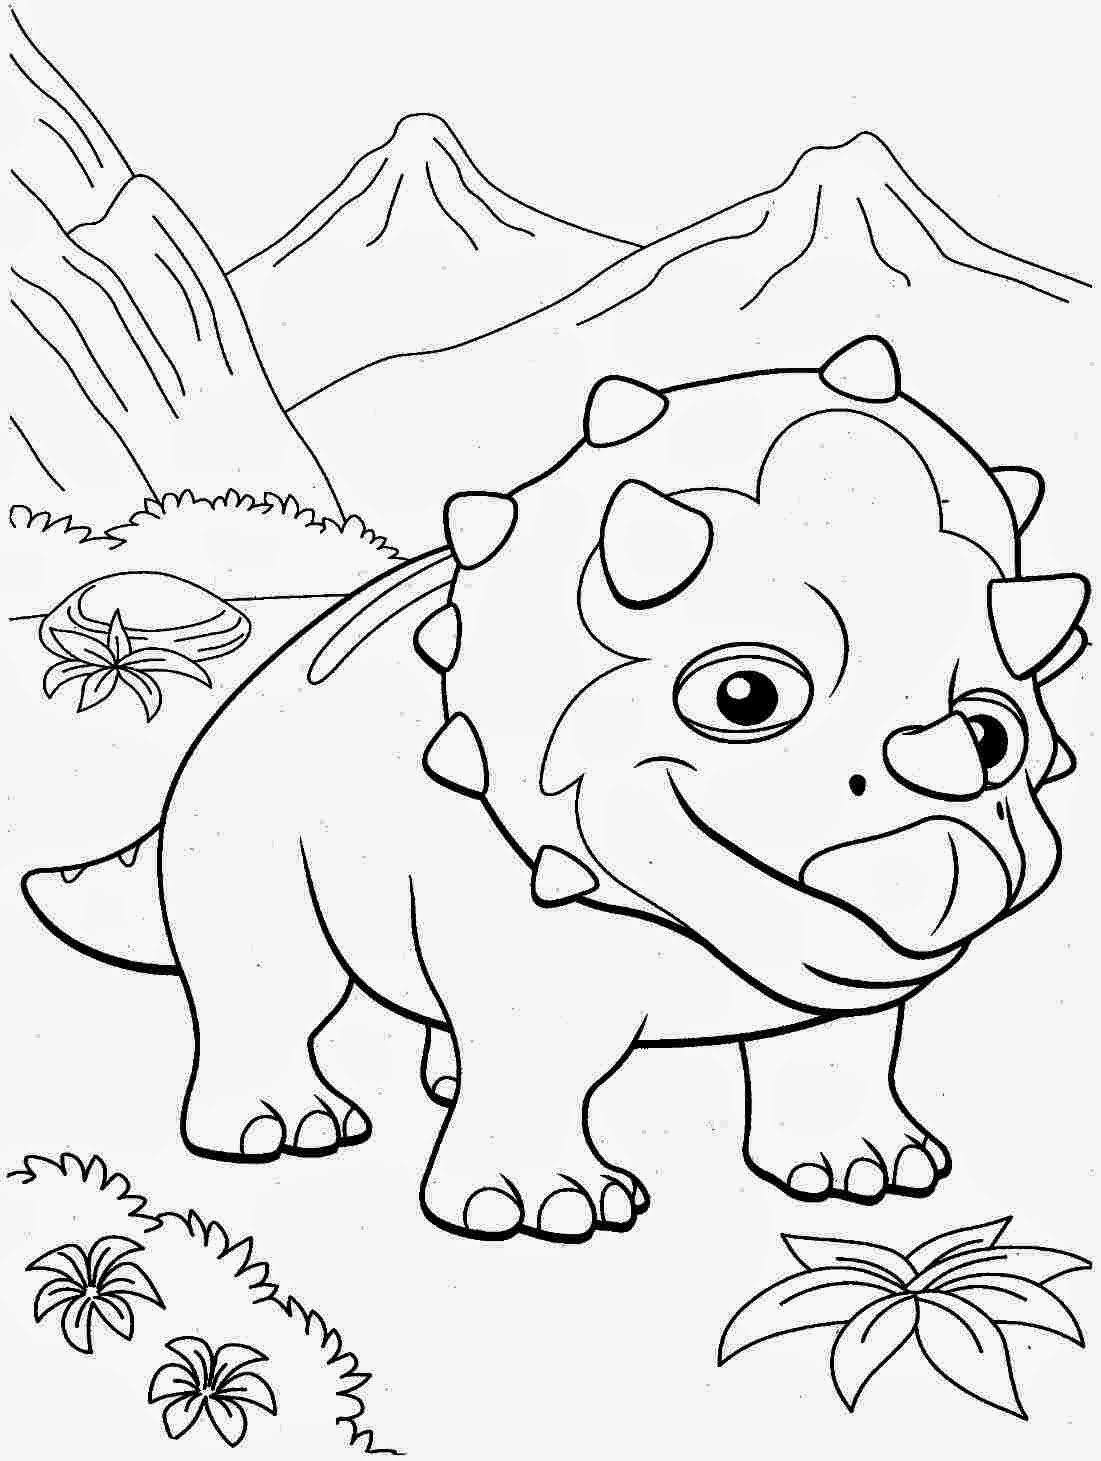 dinosaurs colouring pages dinosaurs coloring pages printable minister coloring pages dinosaurs colouring